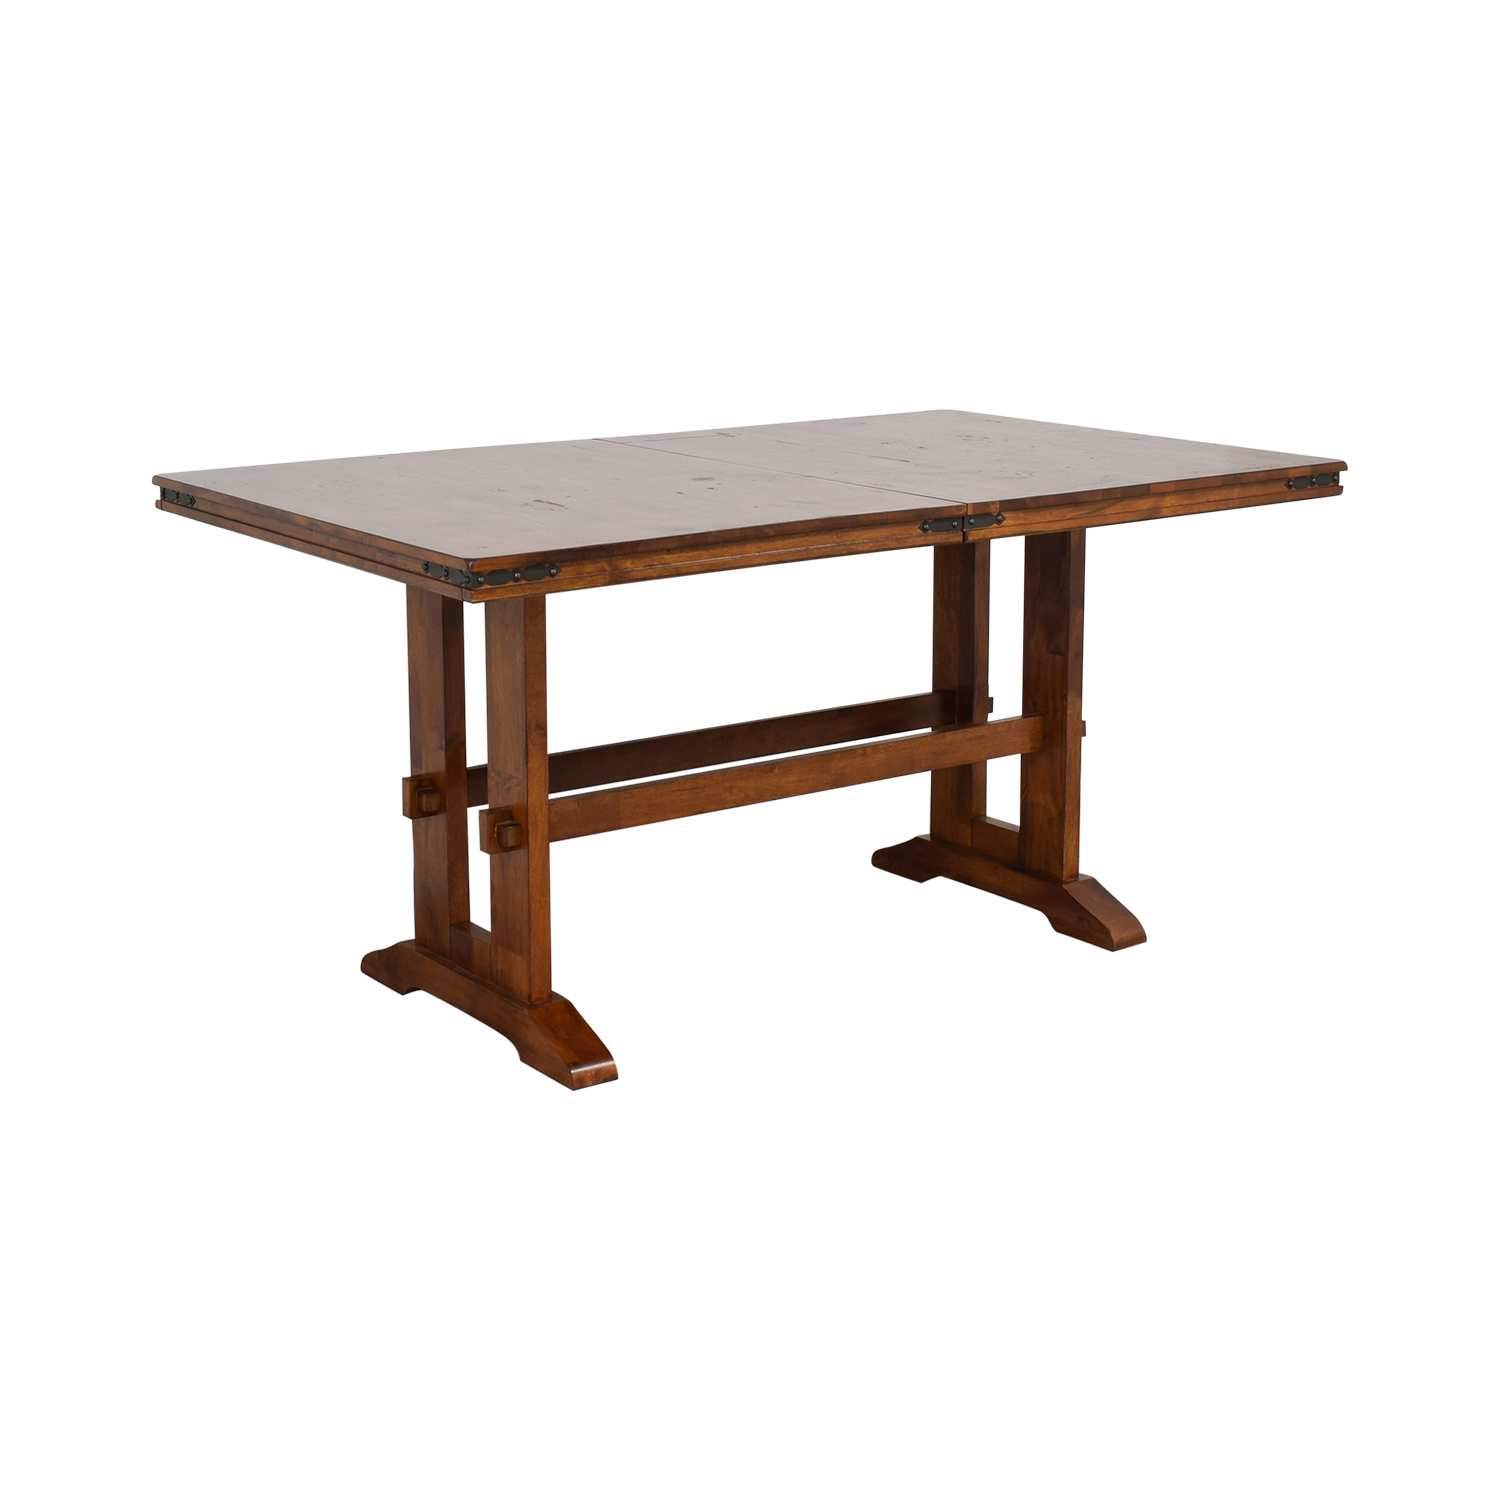 buy Lenox Lenox Extendable Dining Table online